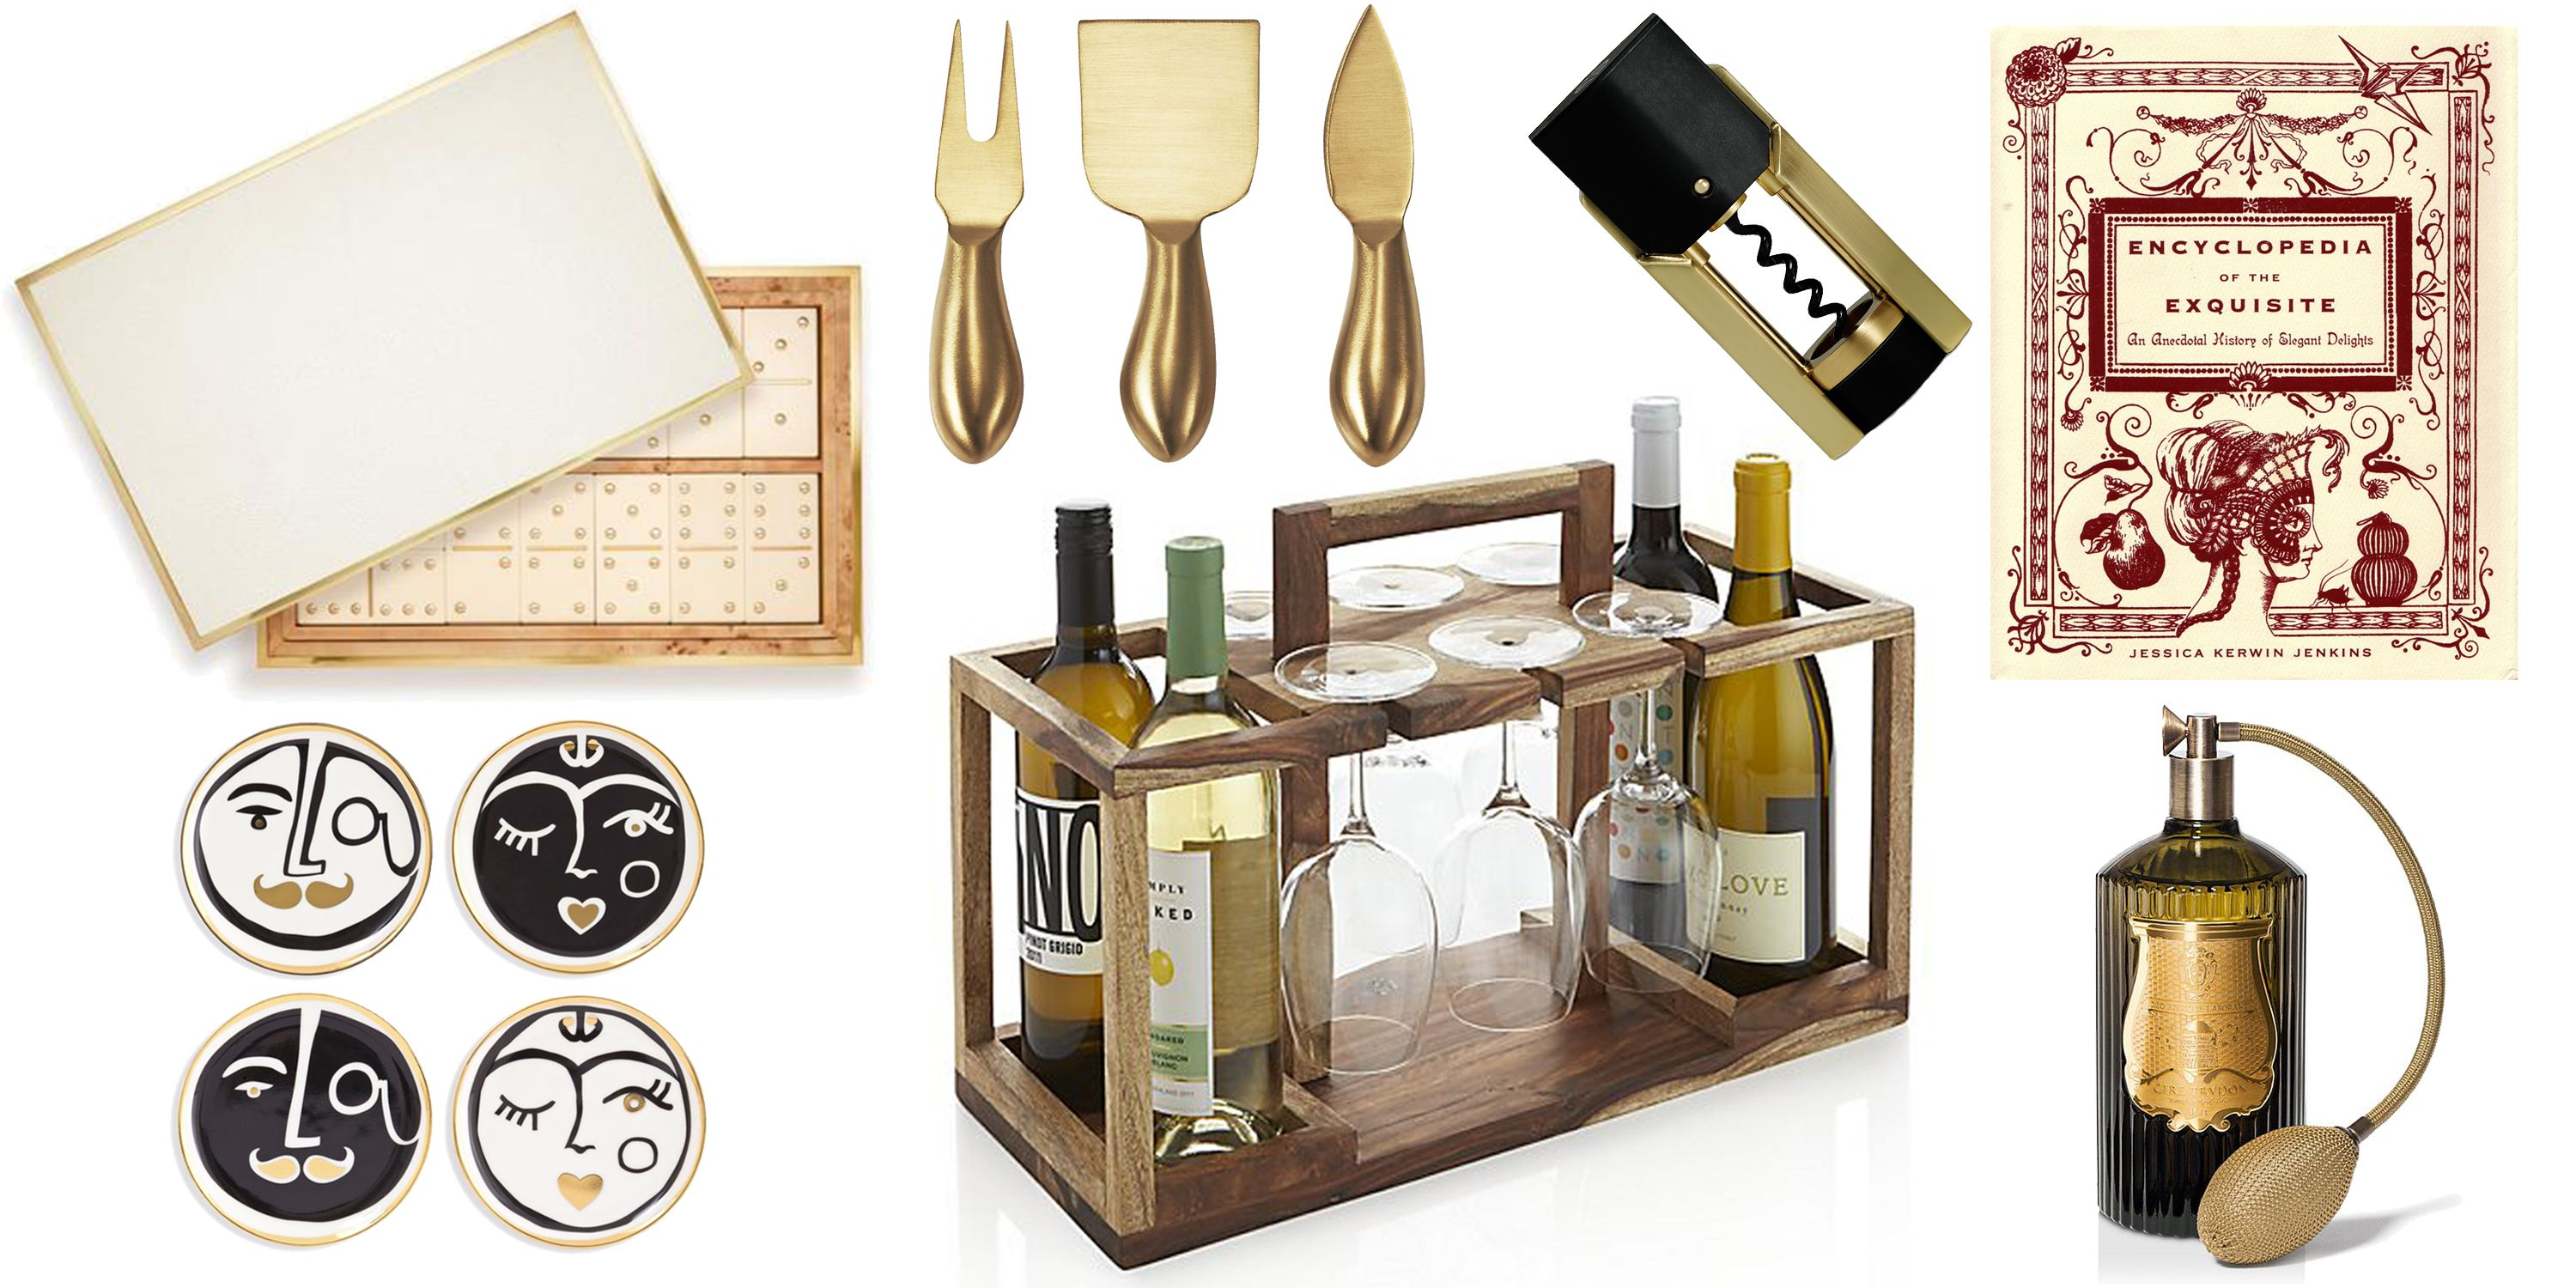 25 Best Hostess Gifts 2020 Hostess Gift Ideas For Any Occasion